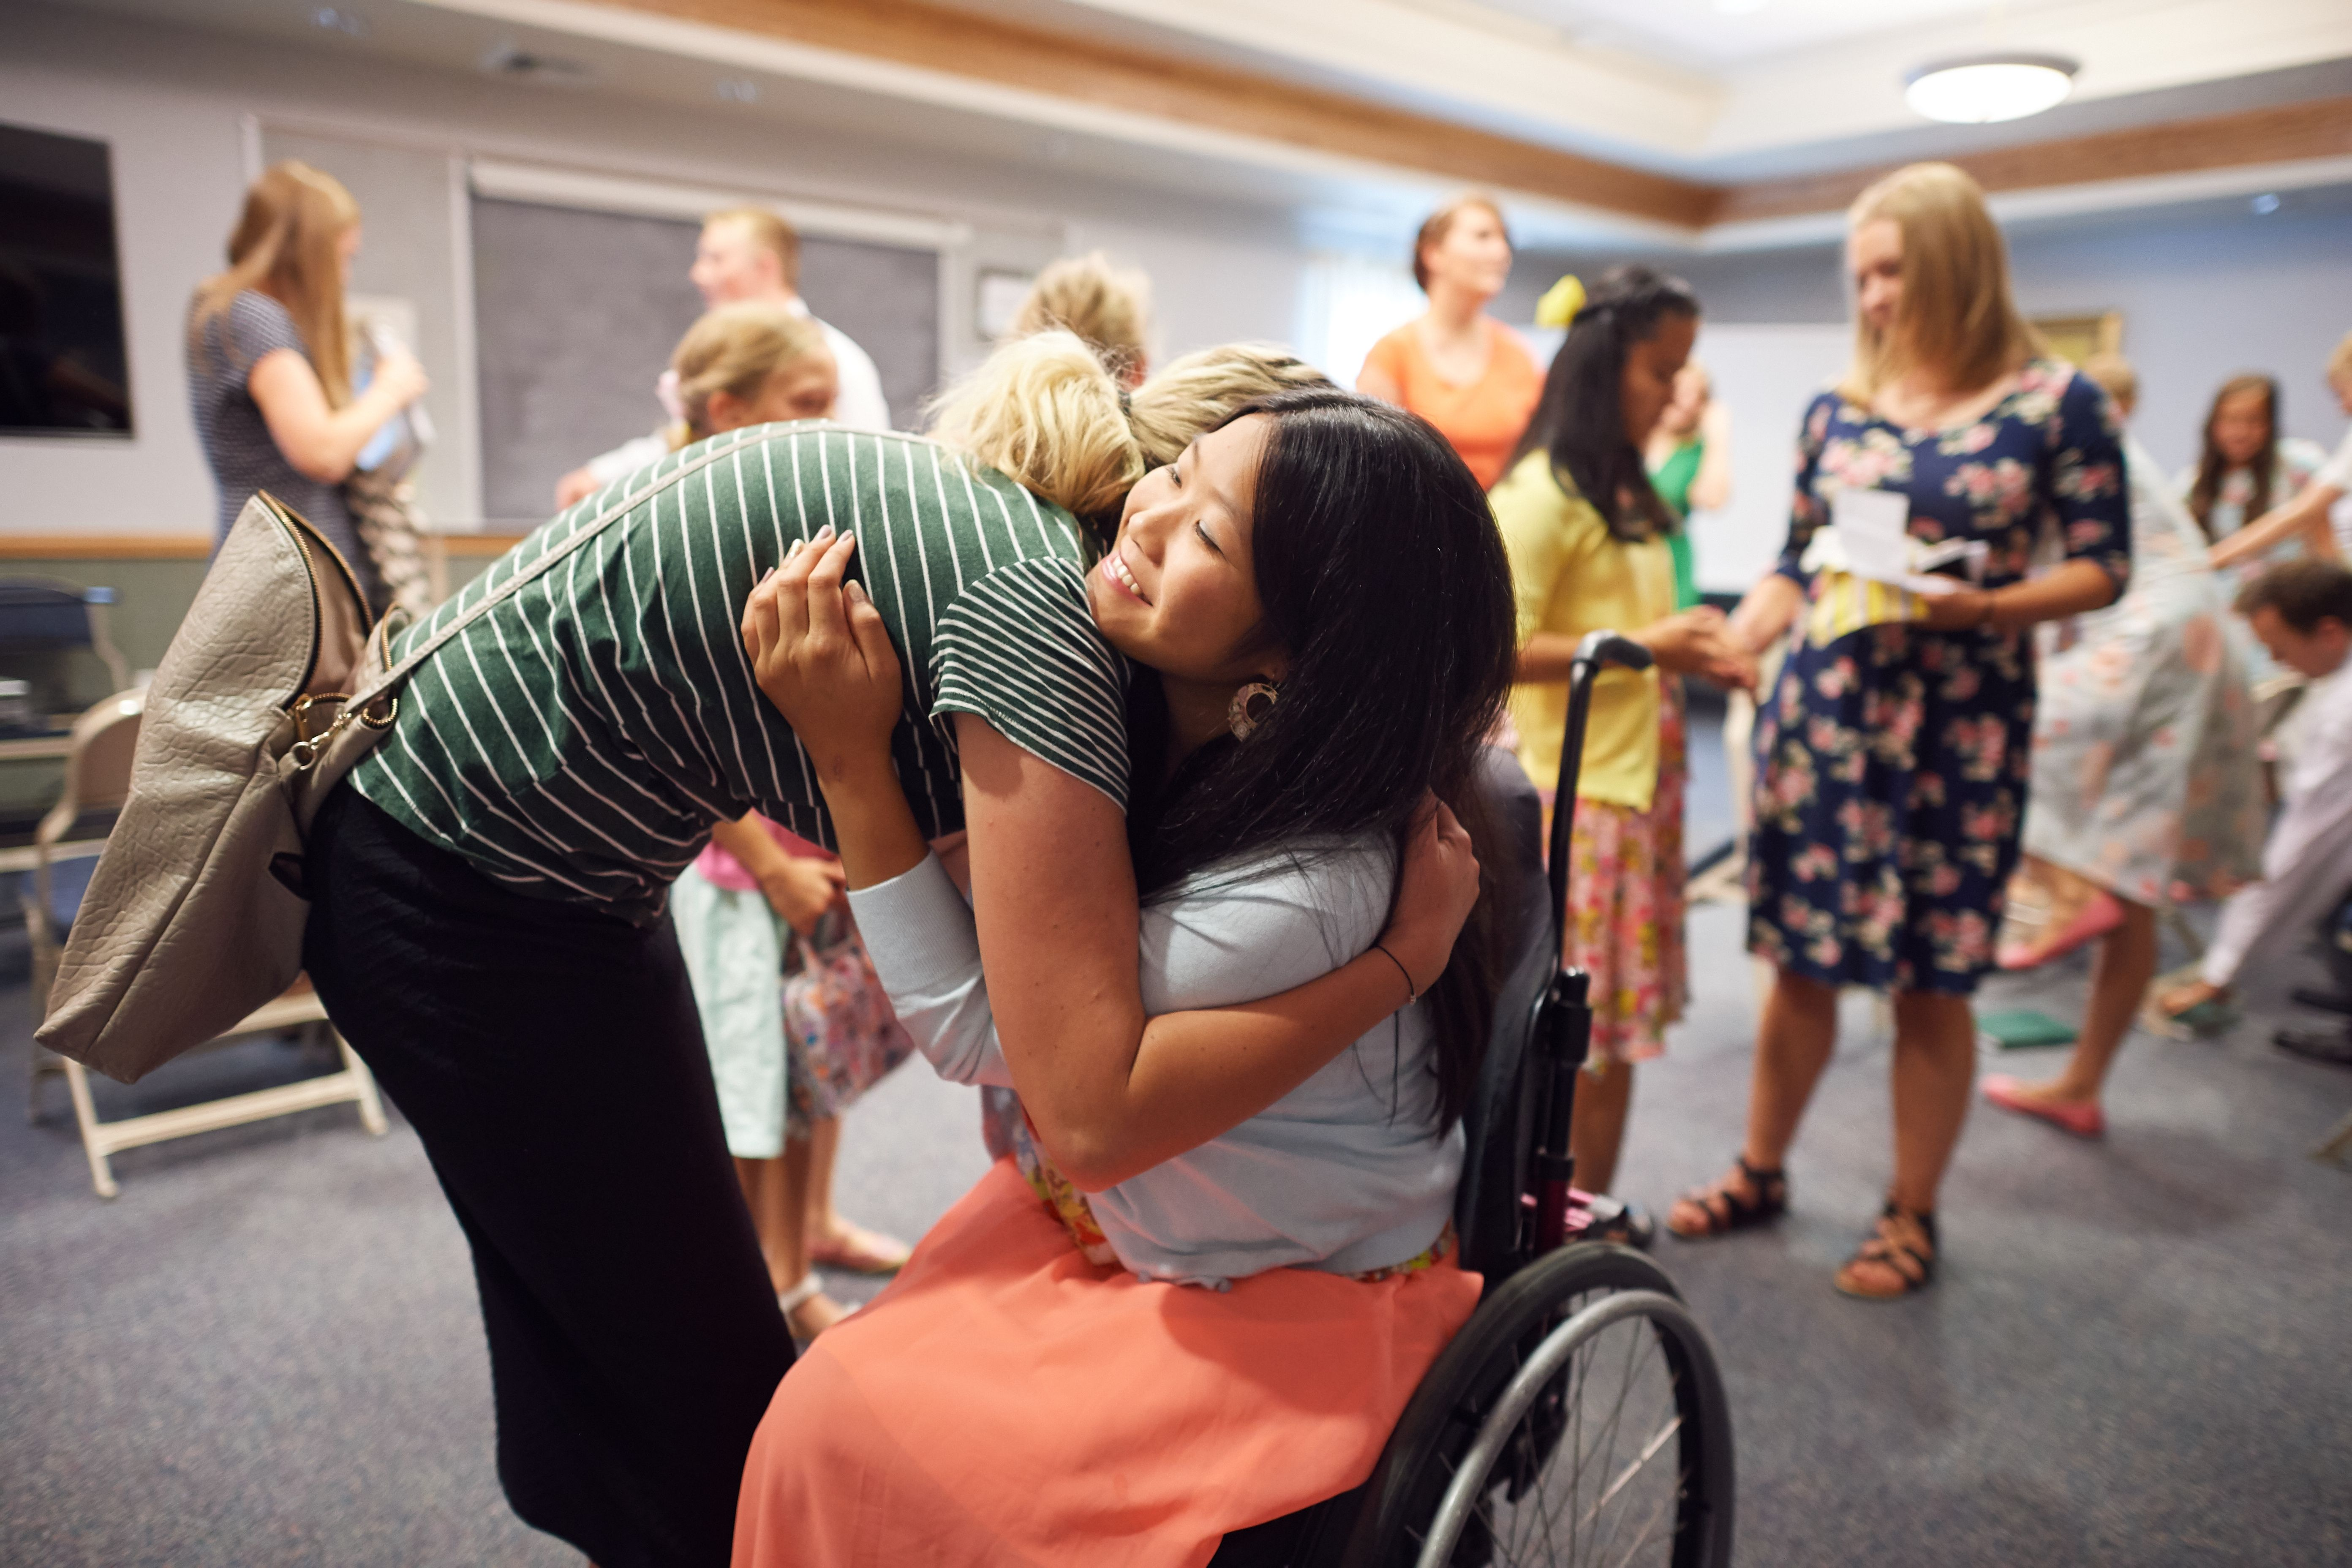 A young woman in a green striped shirt and black skirt leans down to hug her friend who is sitting in a wheelchair.